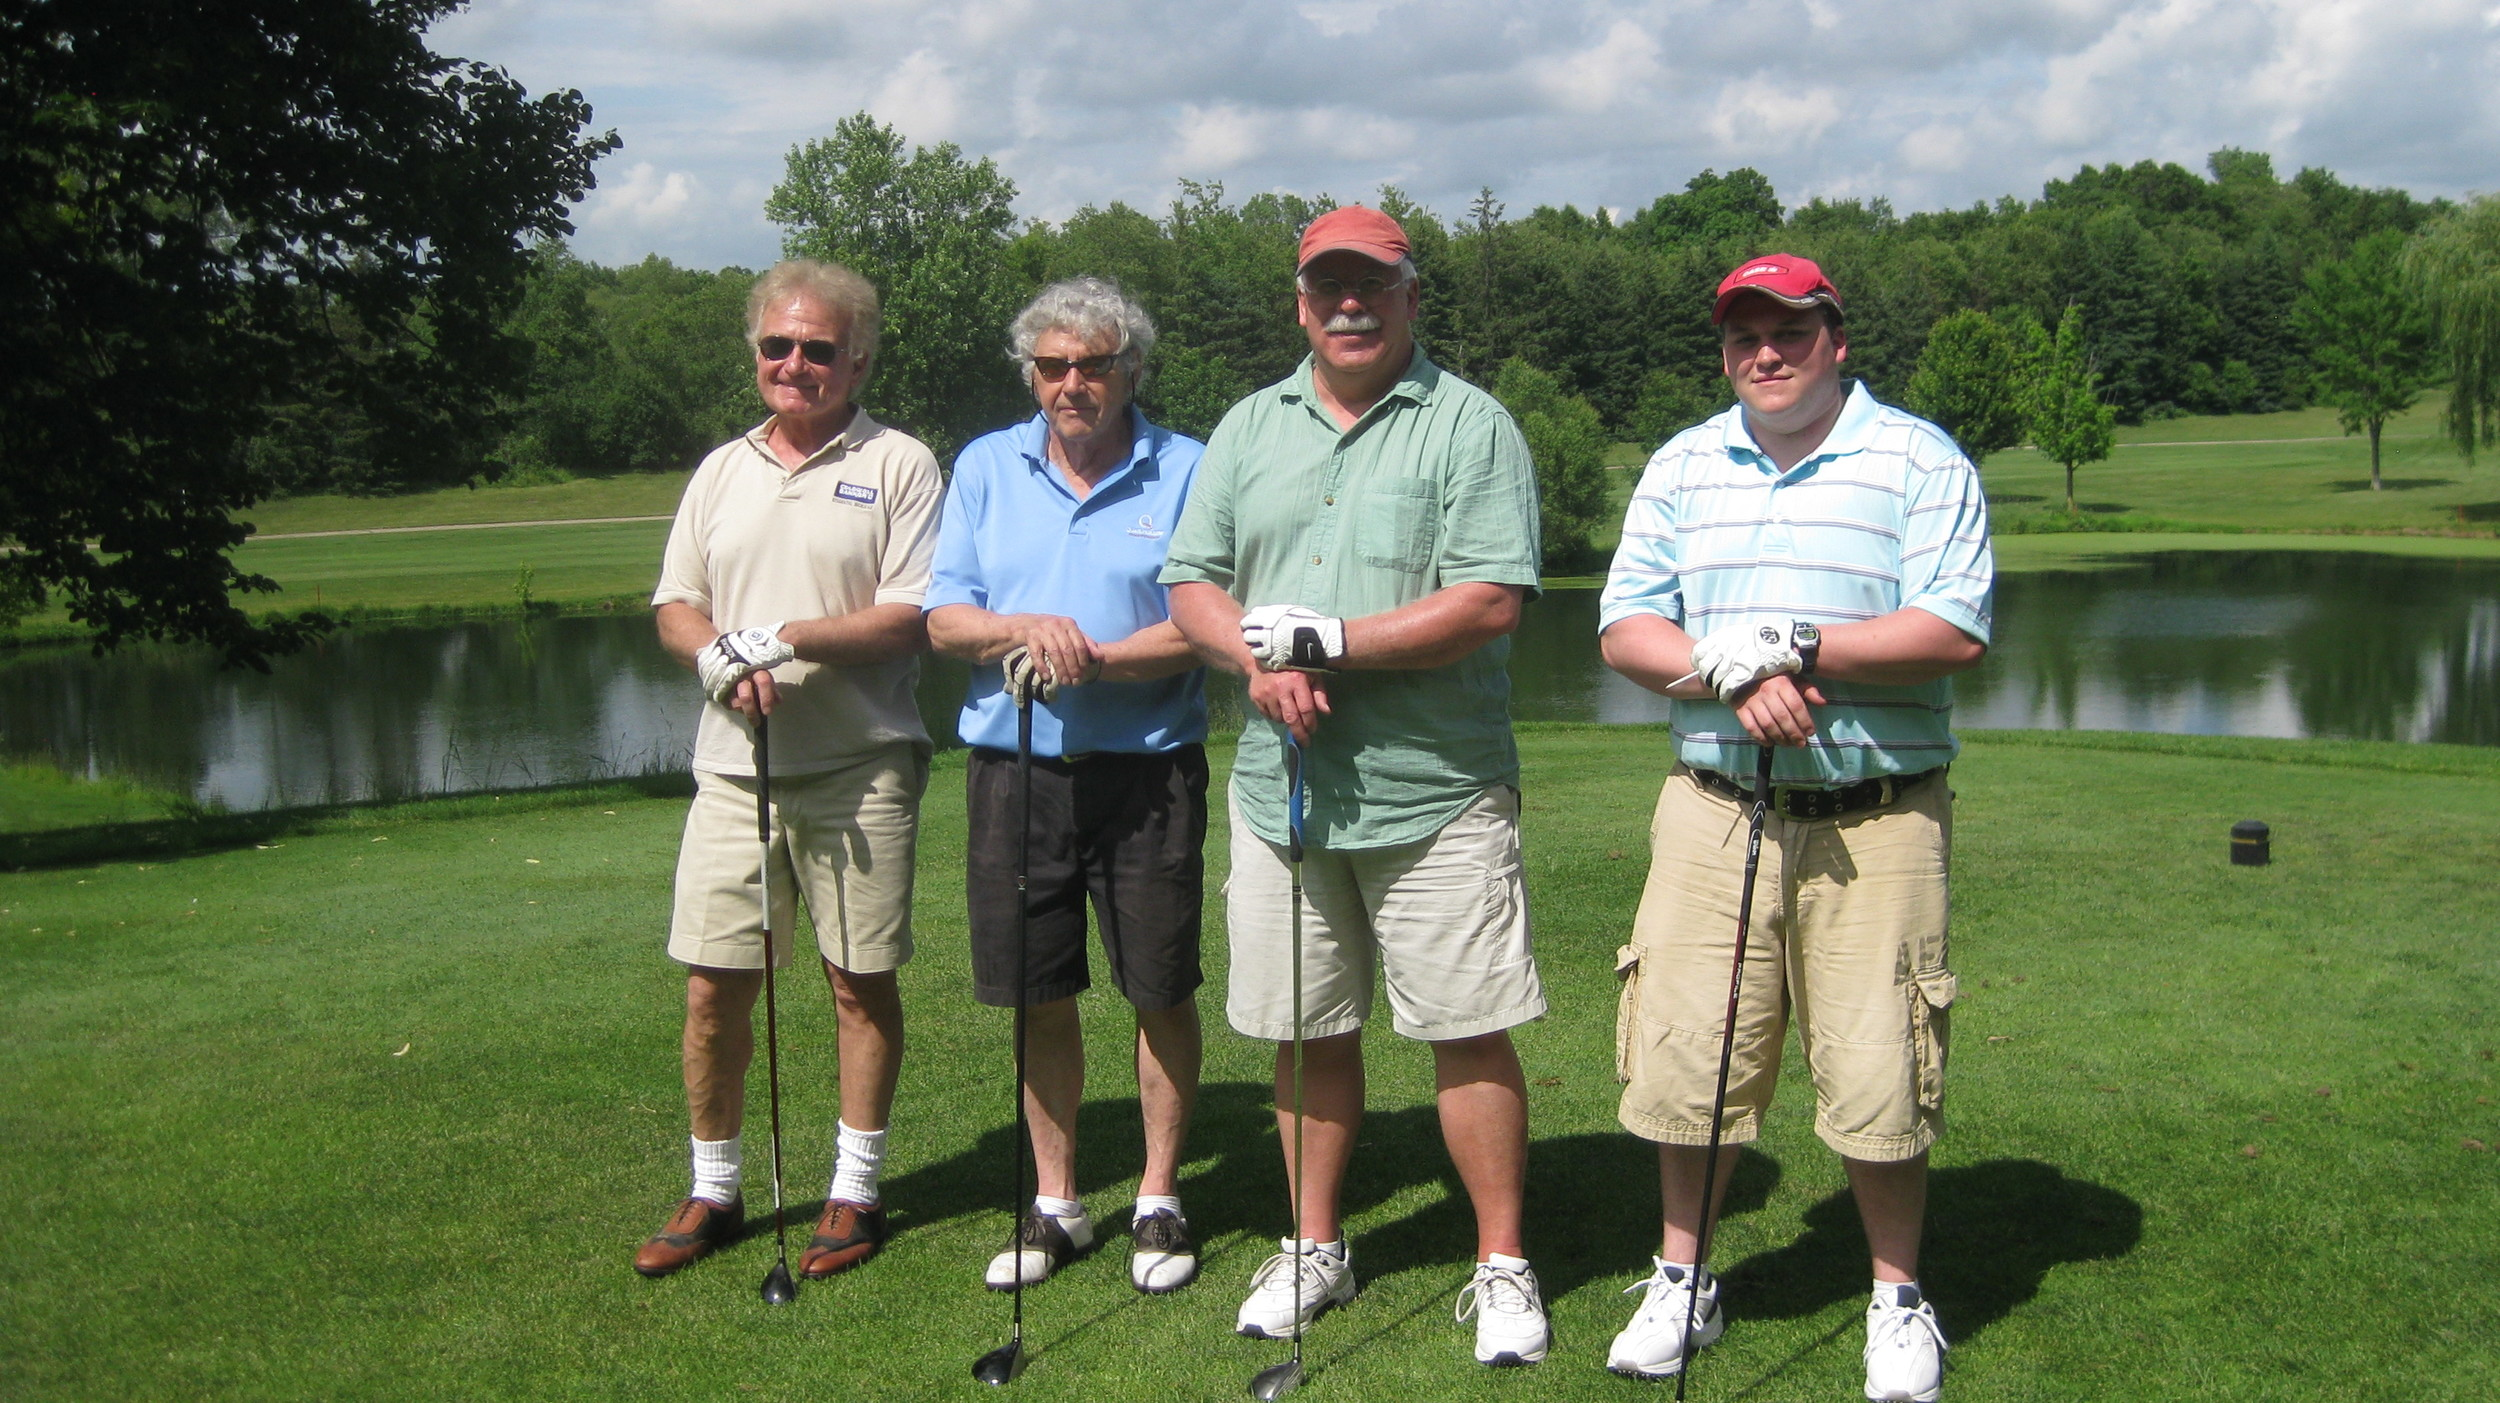 Wayne, Jim, Jeff and Kyle - formidable golfing opponents